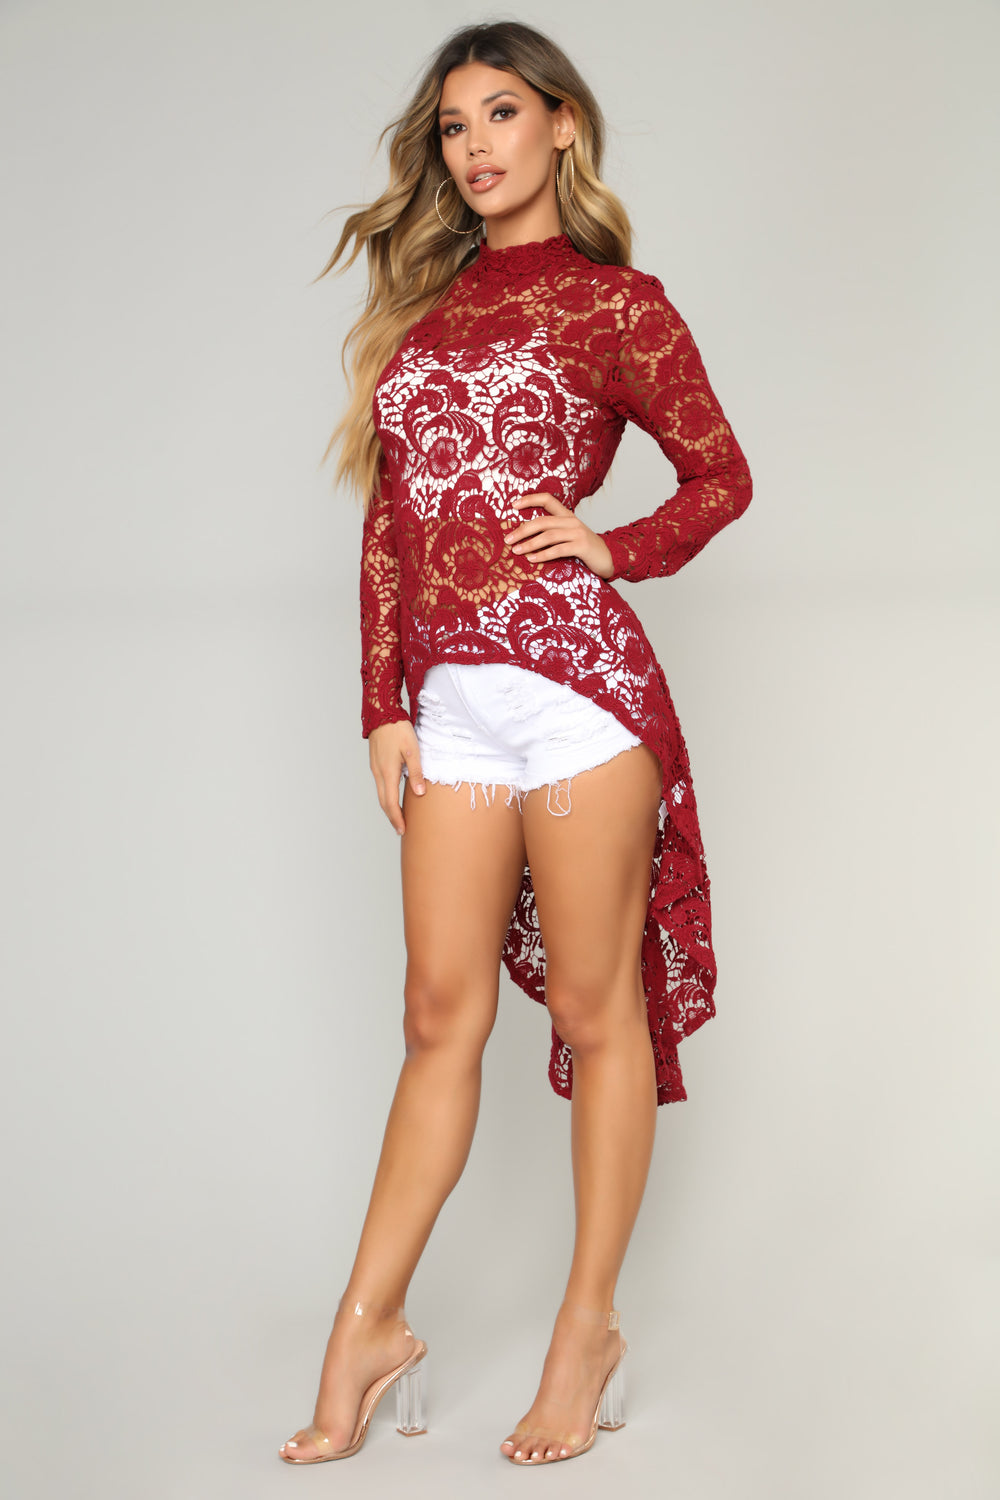 Crochet Dream High Low Top - Wine